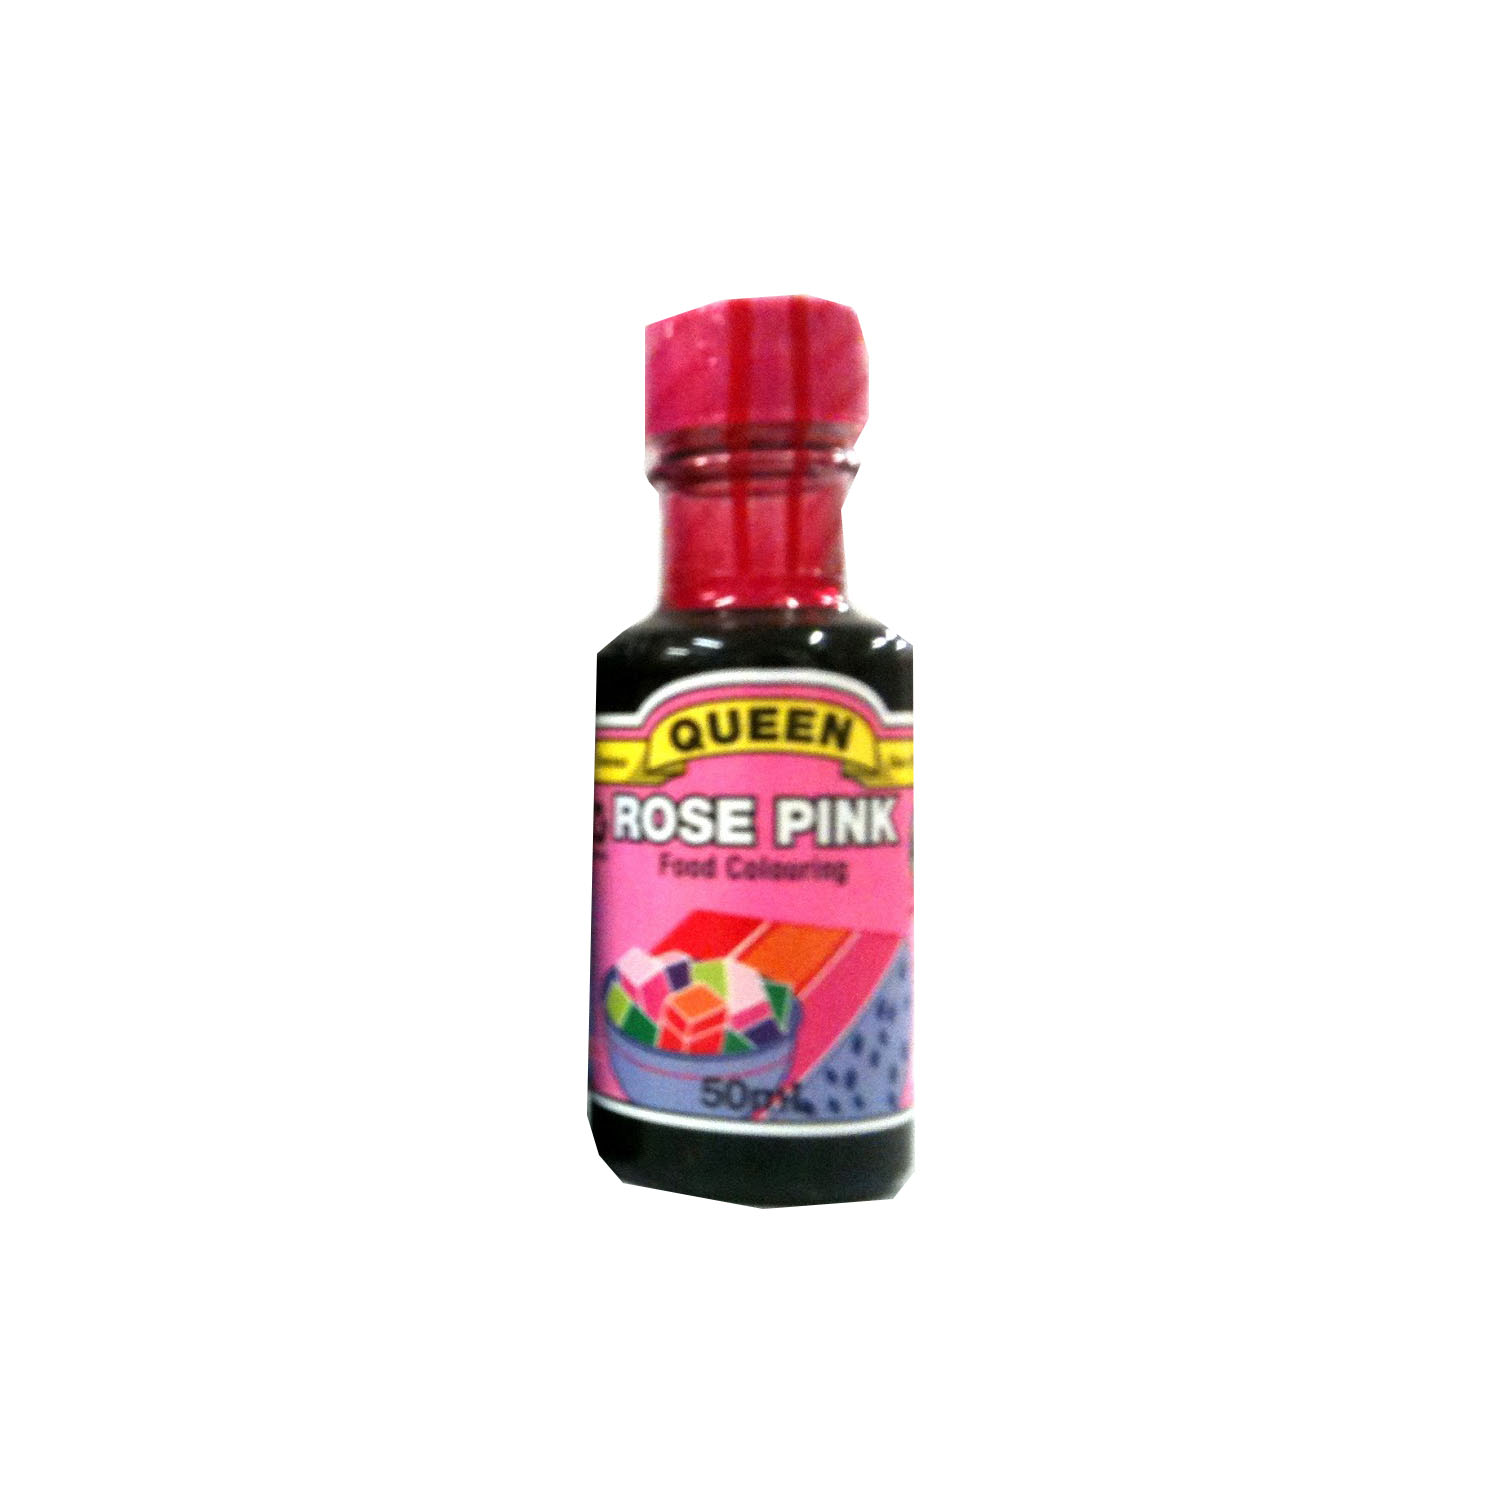 Queen Food Colouring - Rose Pink